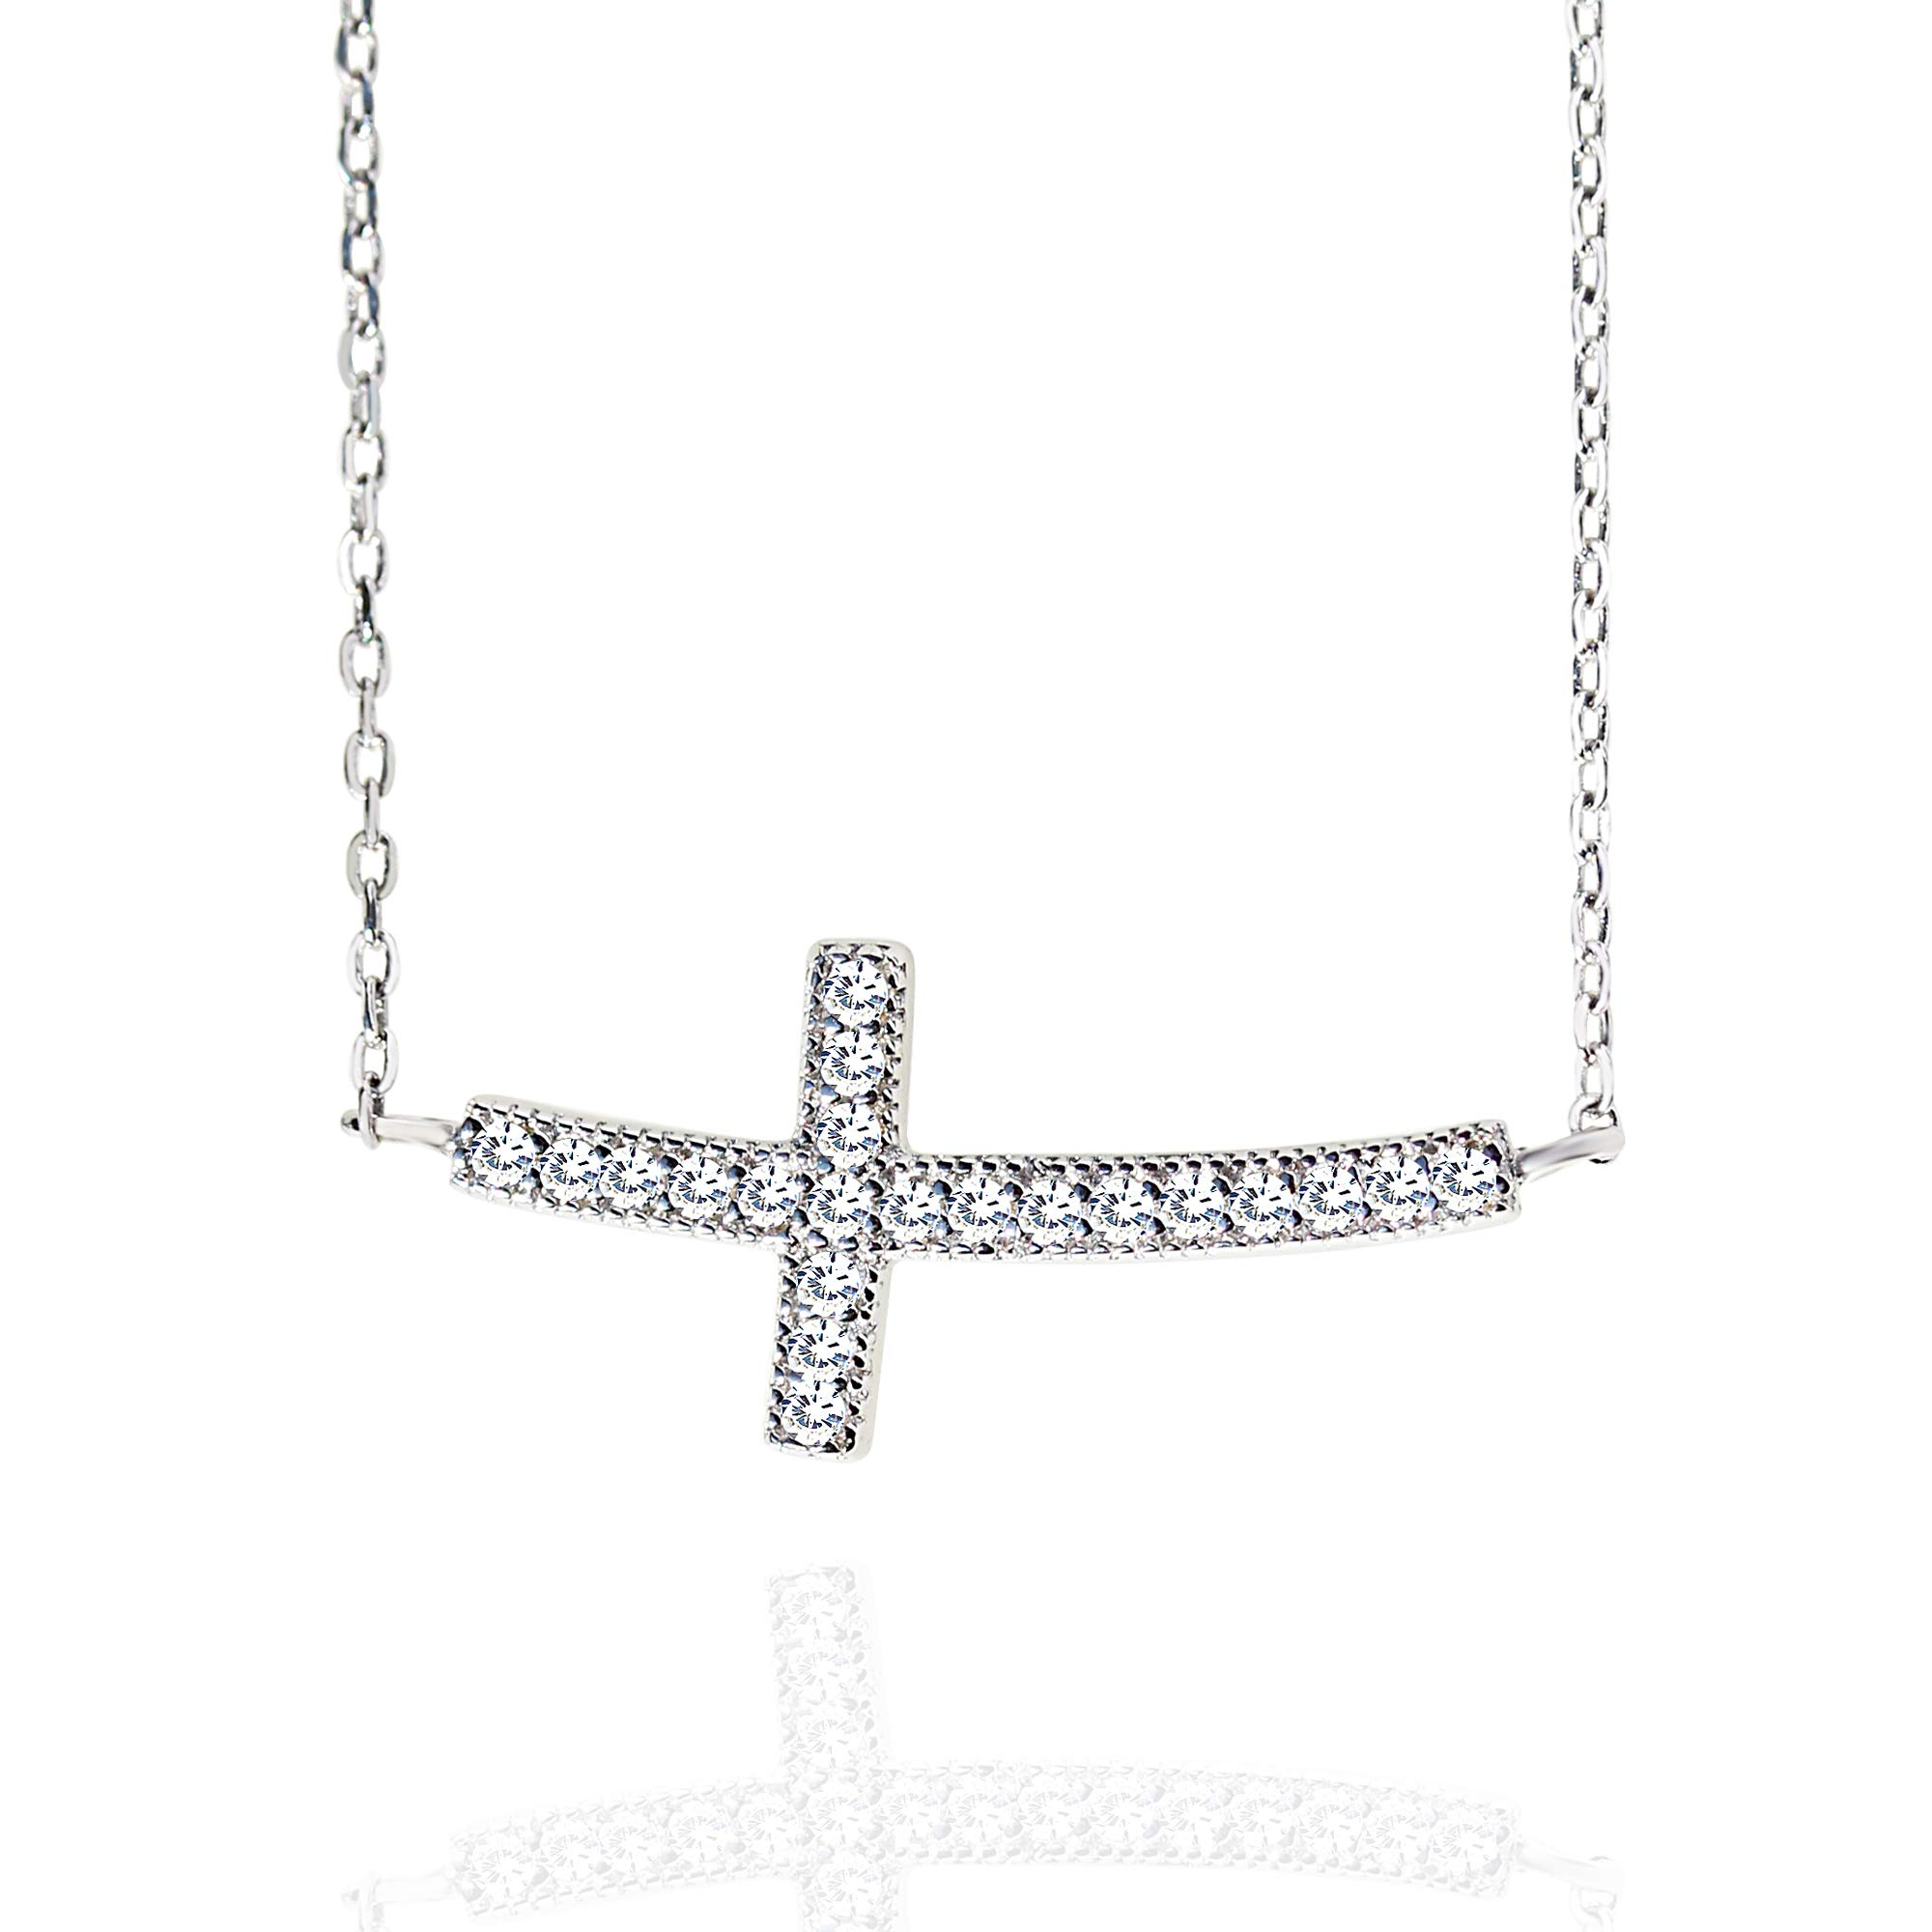 Spoil Cupid Rhodium-Plated Sterling Silver Cubic Zirconia Curved Sideways Cross Chain Necklace,18\